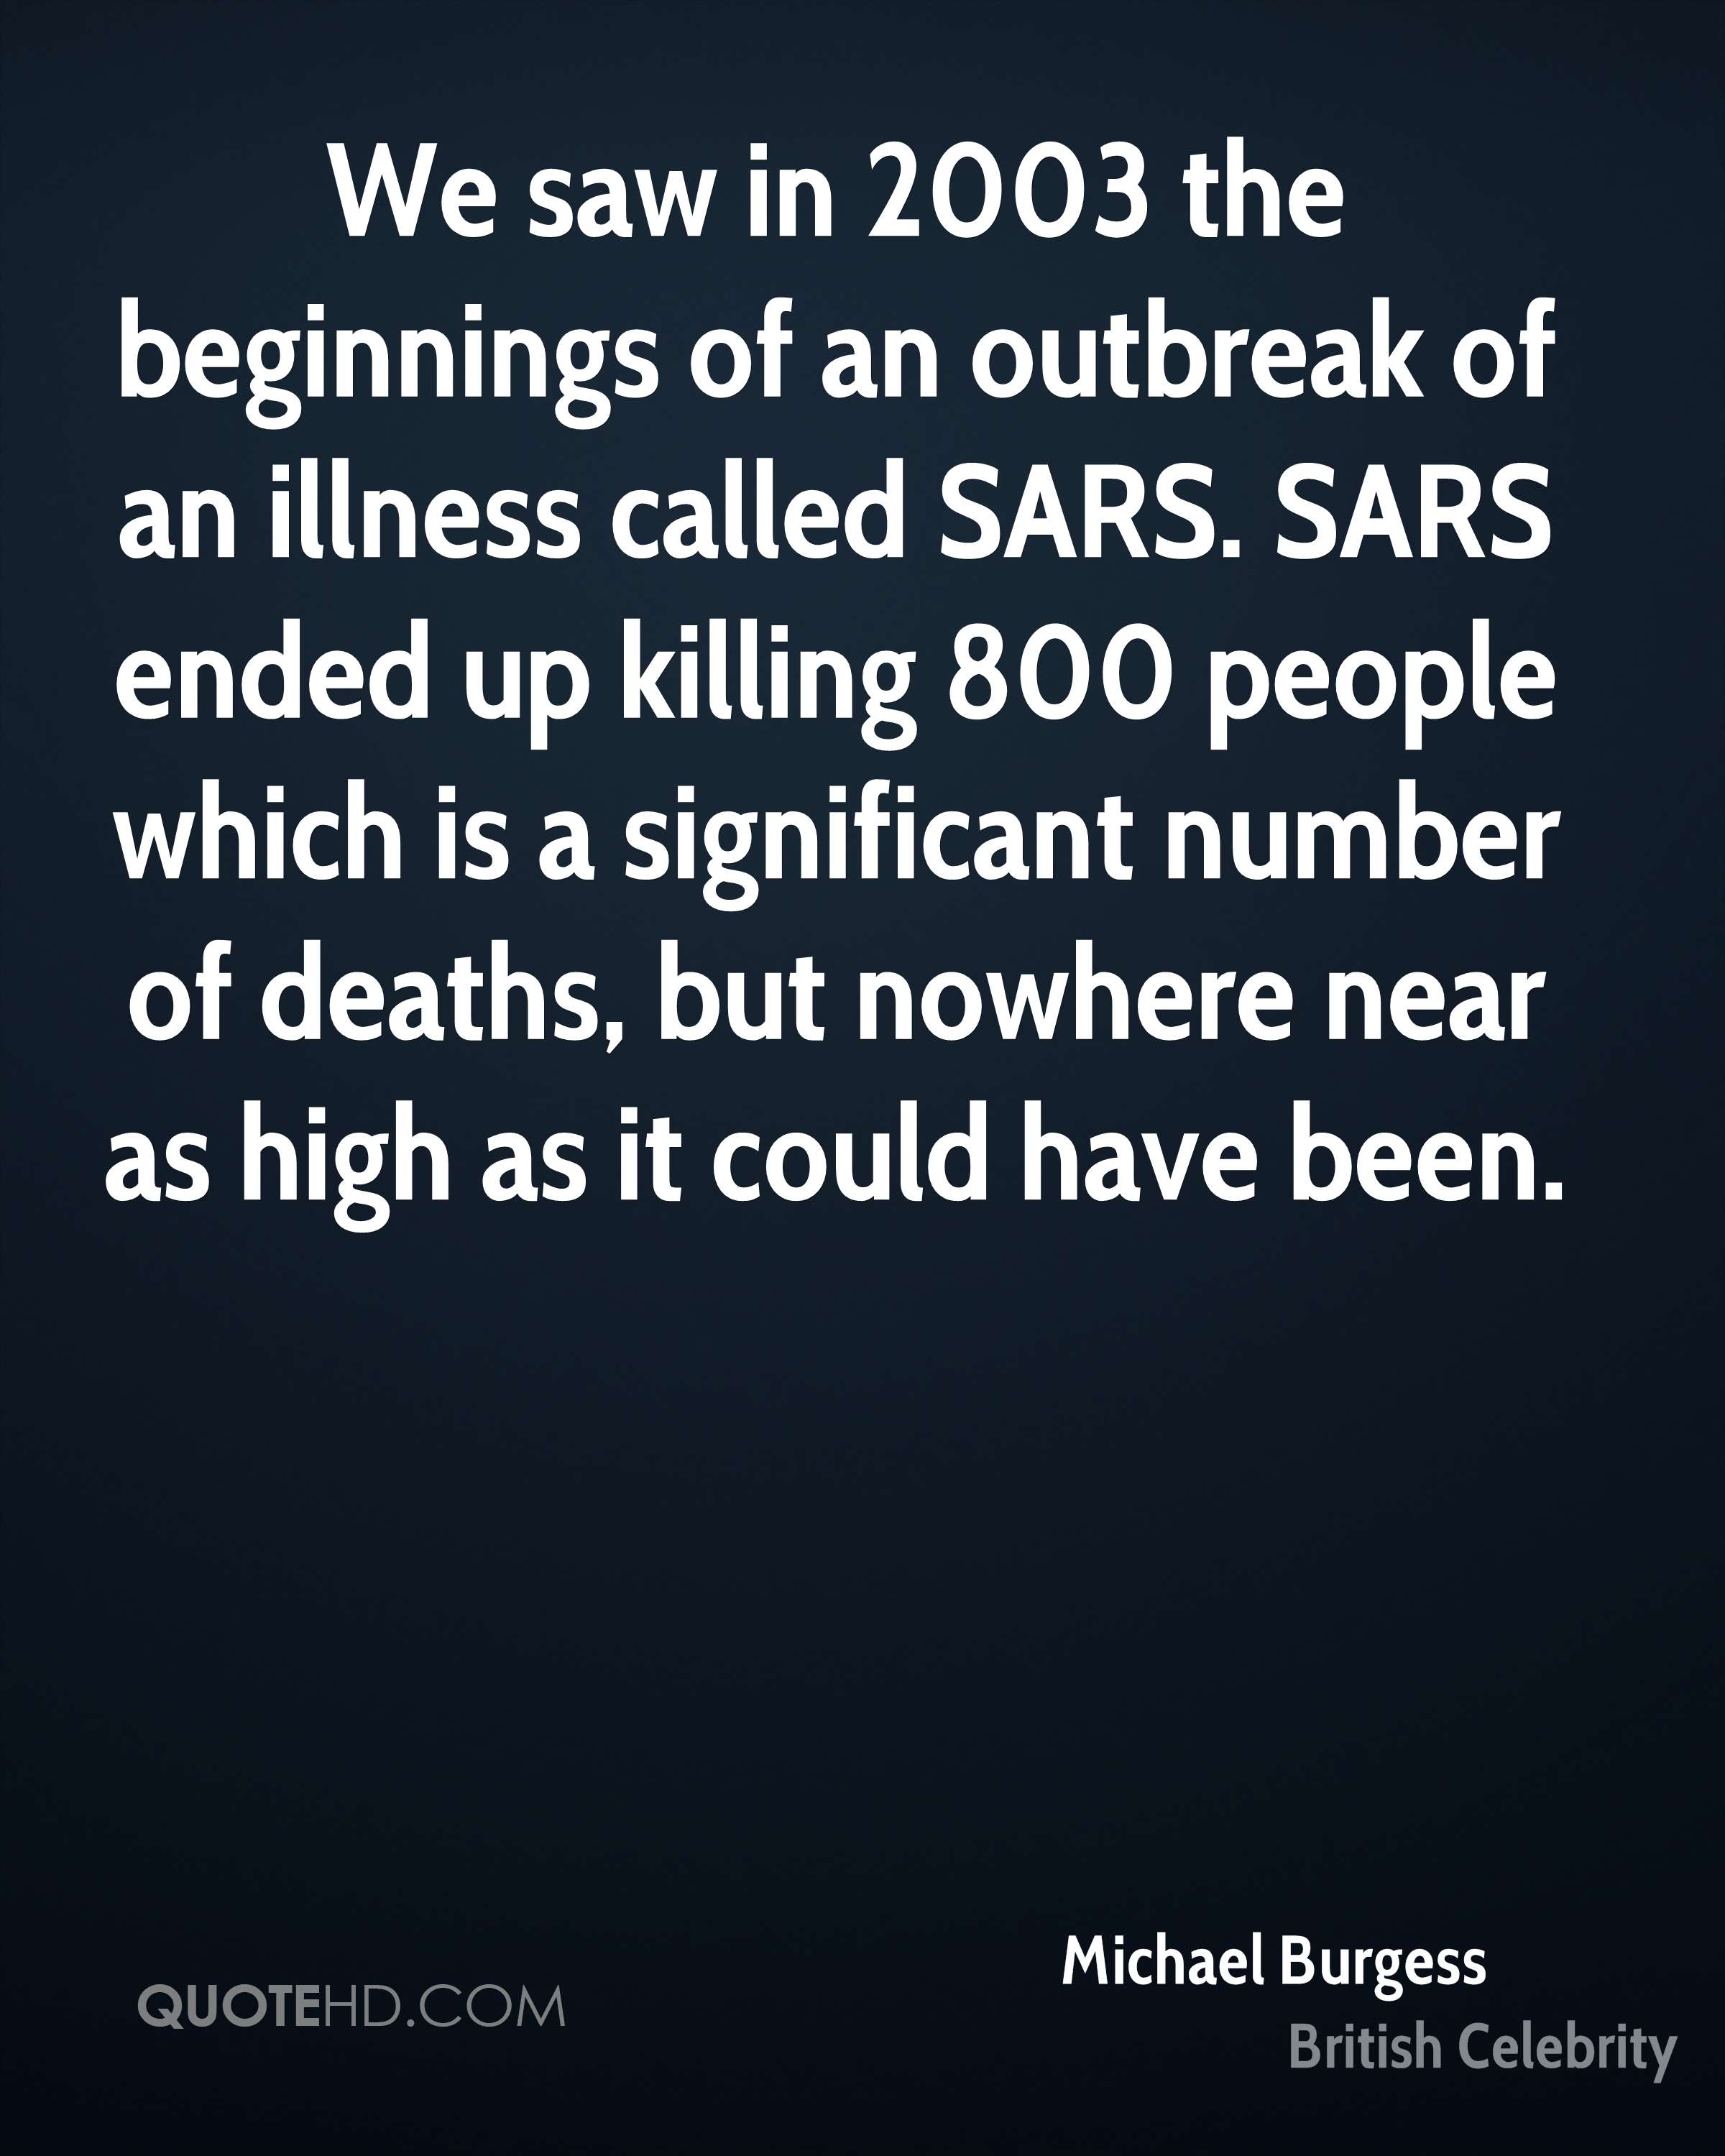 We saw in 2003 the beginnings of an outbreak of an illness called SARS. SARS ended up killing 800 people which is a significant number of deaths, but nowhere near as high as it could have been.